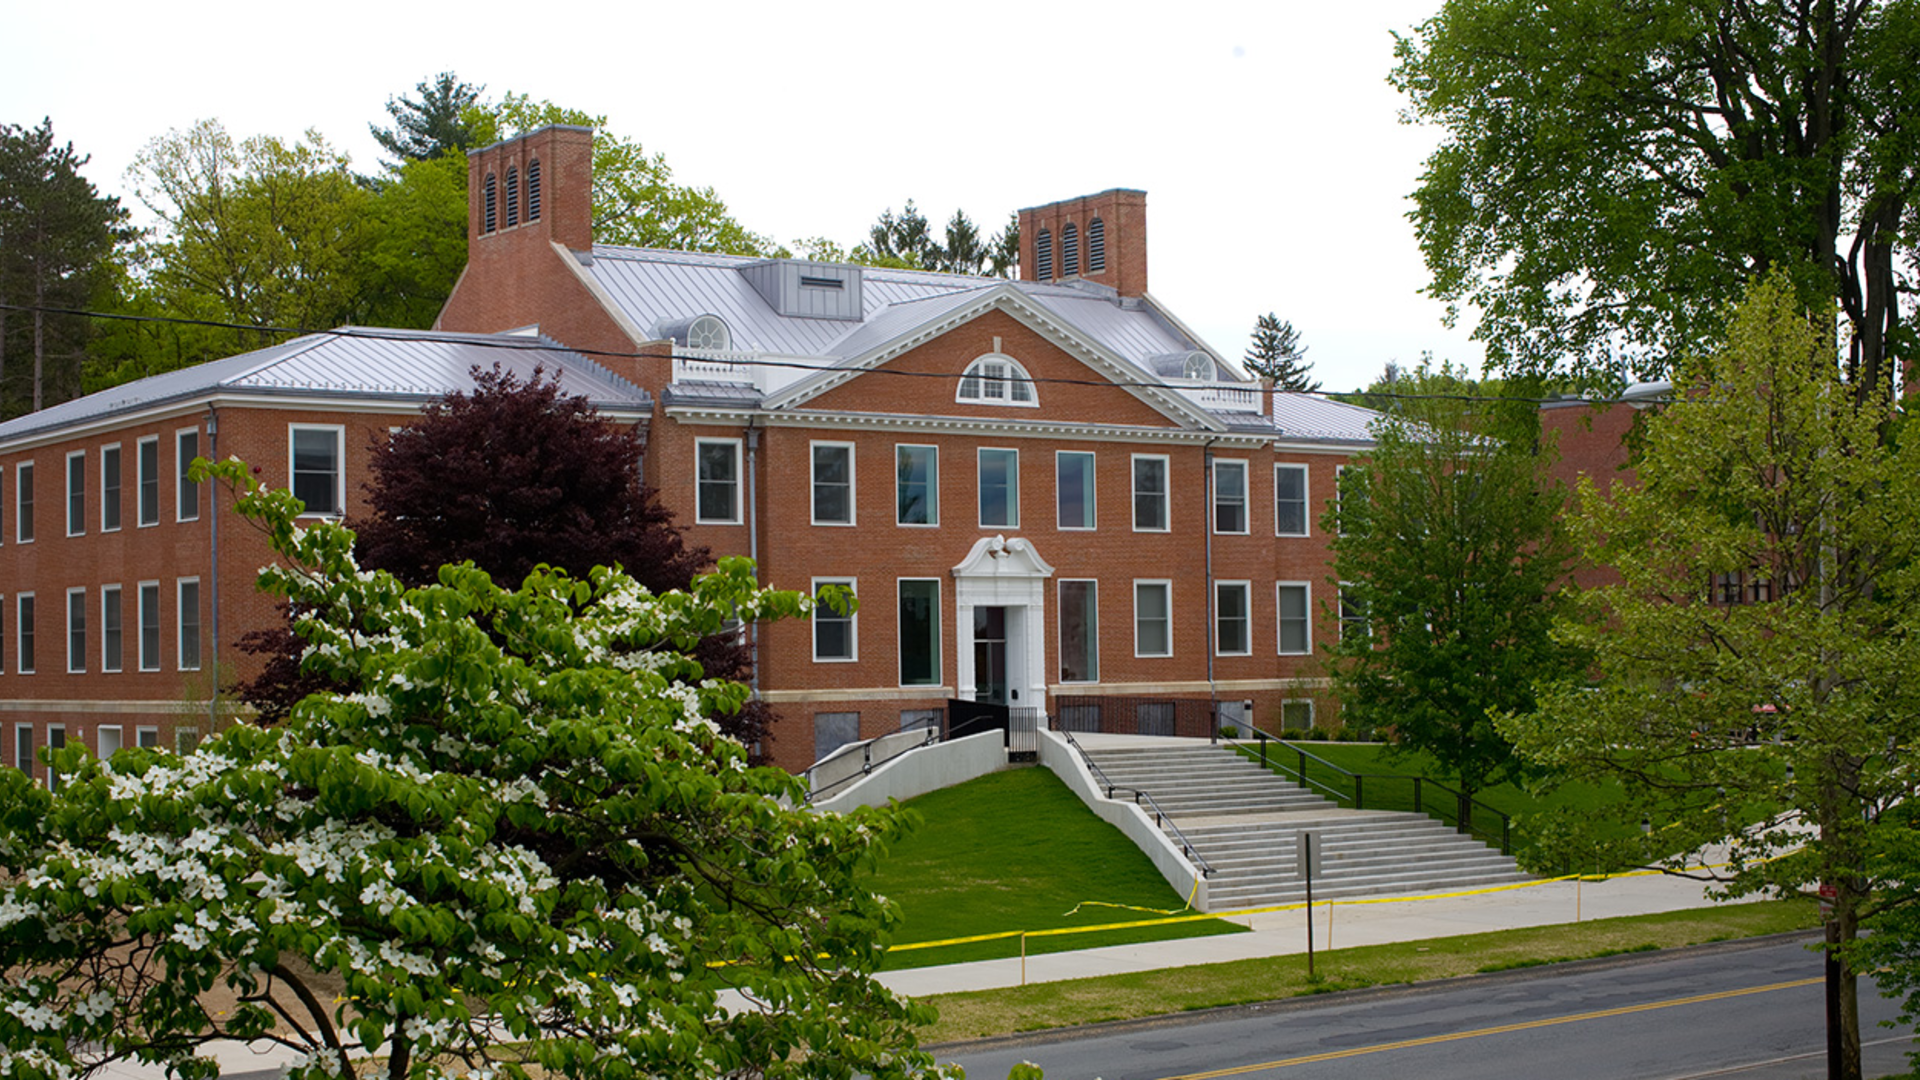 Skinner Hall at the College of Nursing at UMass Amherst